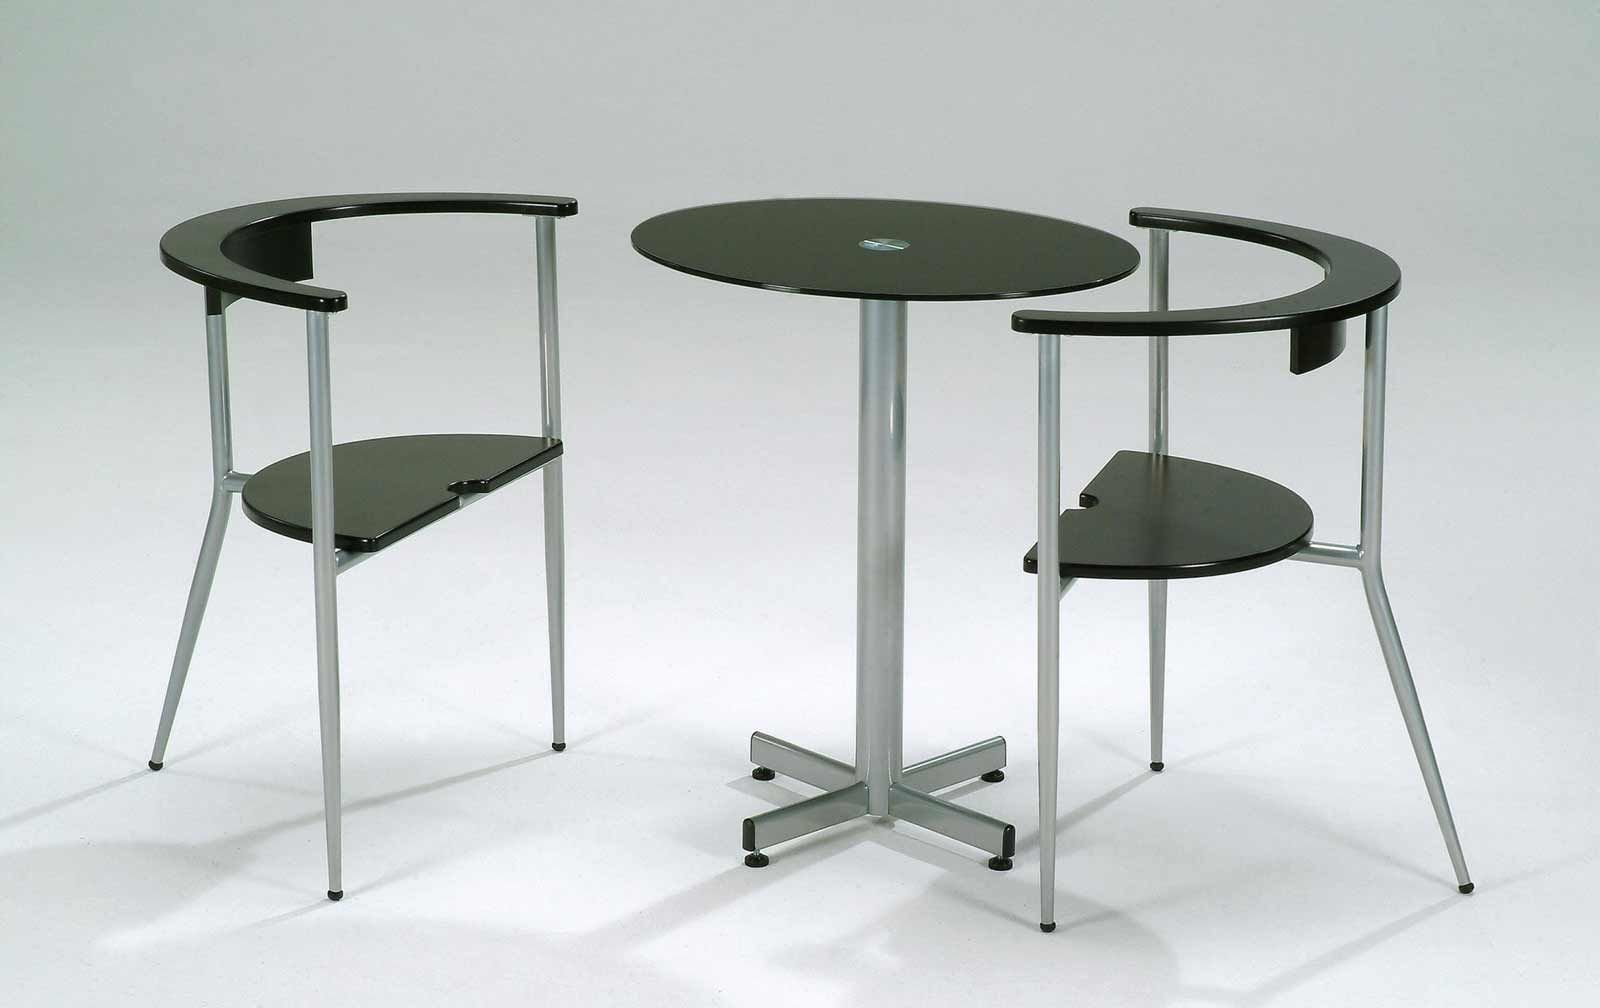 contemporary cafe tables and chairs - Google Search | Ease ...